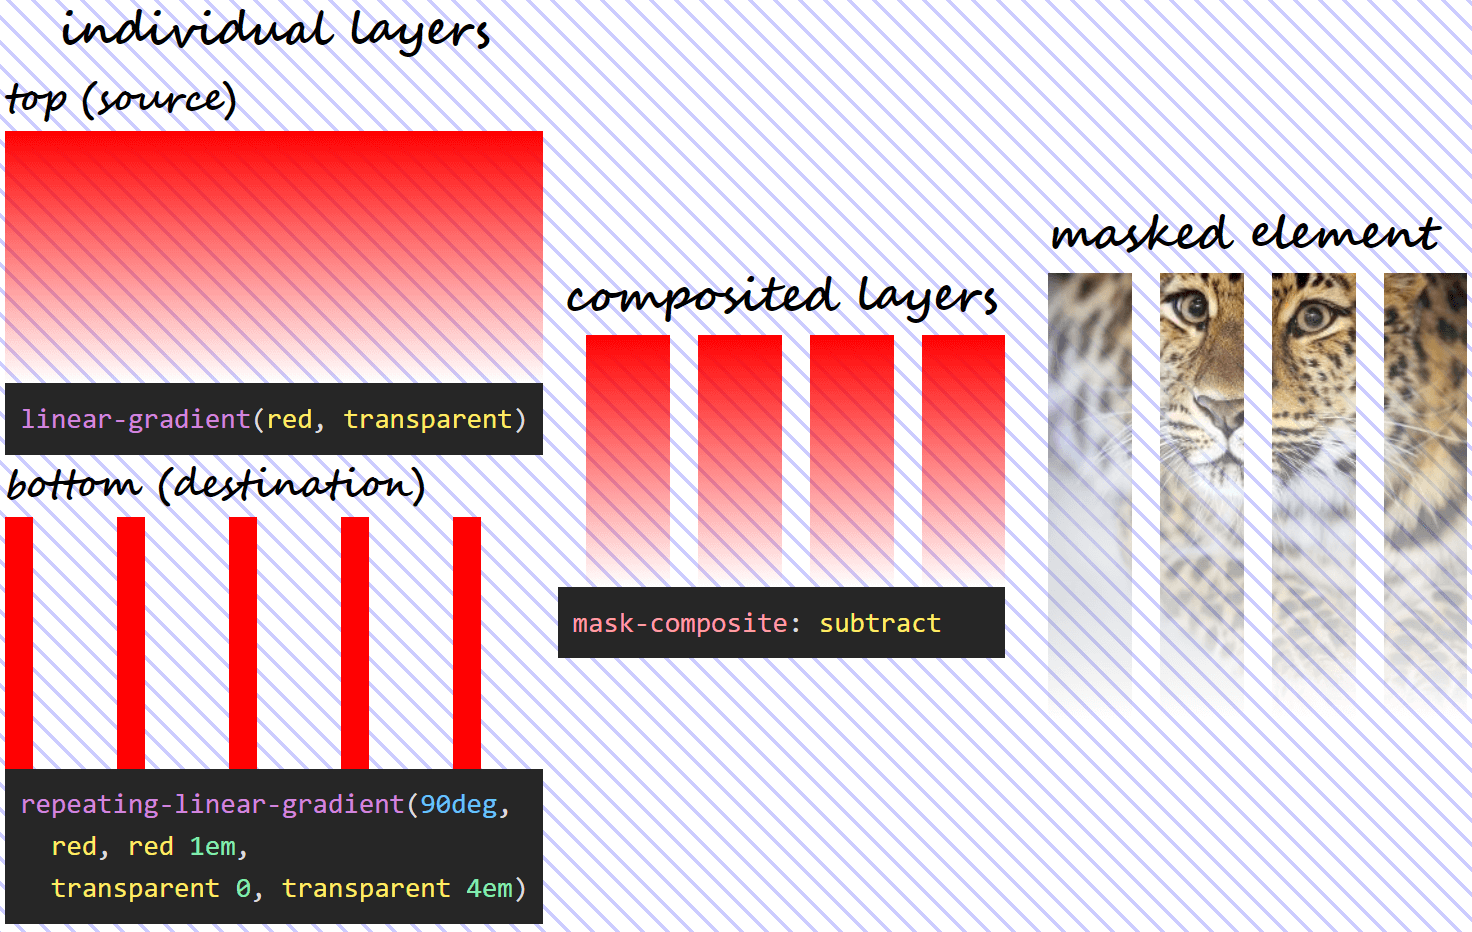 Three column illustration of mask-composite: subtract in action. On the first column, we have the individual gradient layers (both the visual results and the generating code). On the second column, we can see what the layer resulting as a result of compositing using the subtract operation looks like. And on the third column, we see this resulting mask layer applied on an image of an Amur leopard. Wherever the top (source) layer is fully opaque or the bottom (destination) layer is fully transparent, our image is fully transparent (completely masked out) as well.